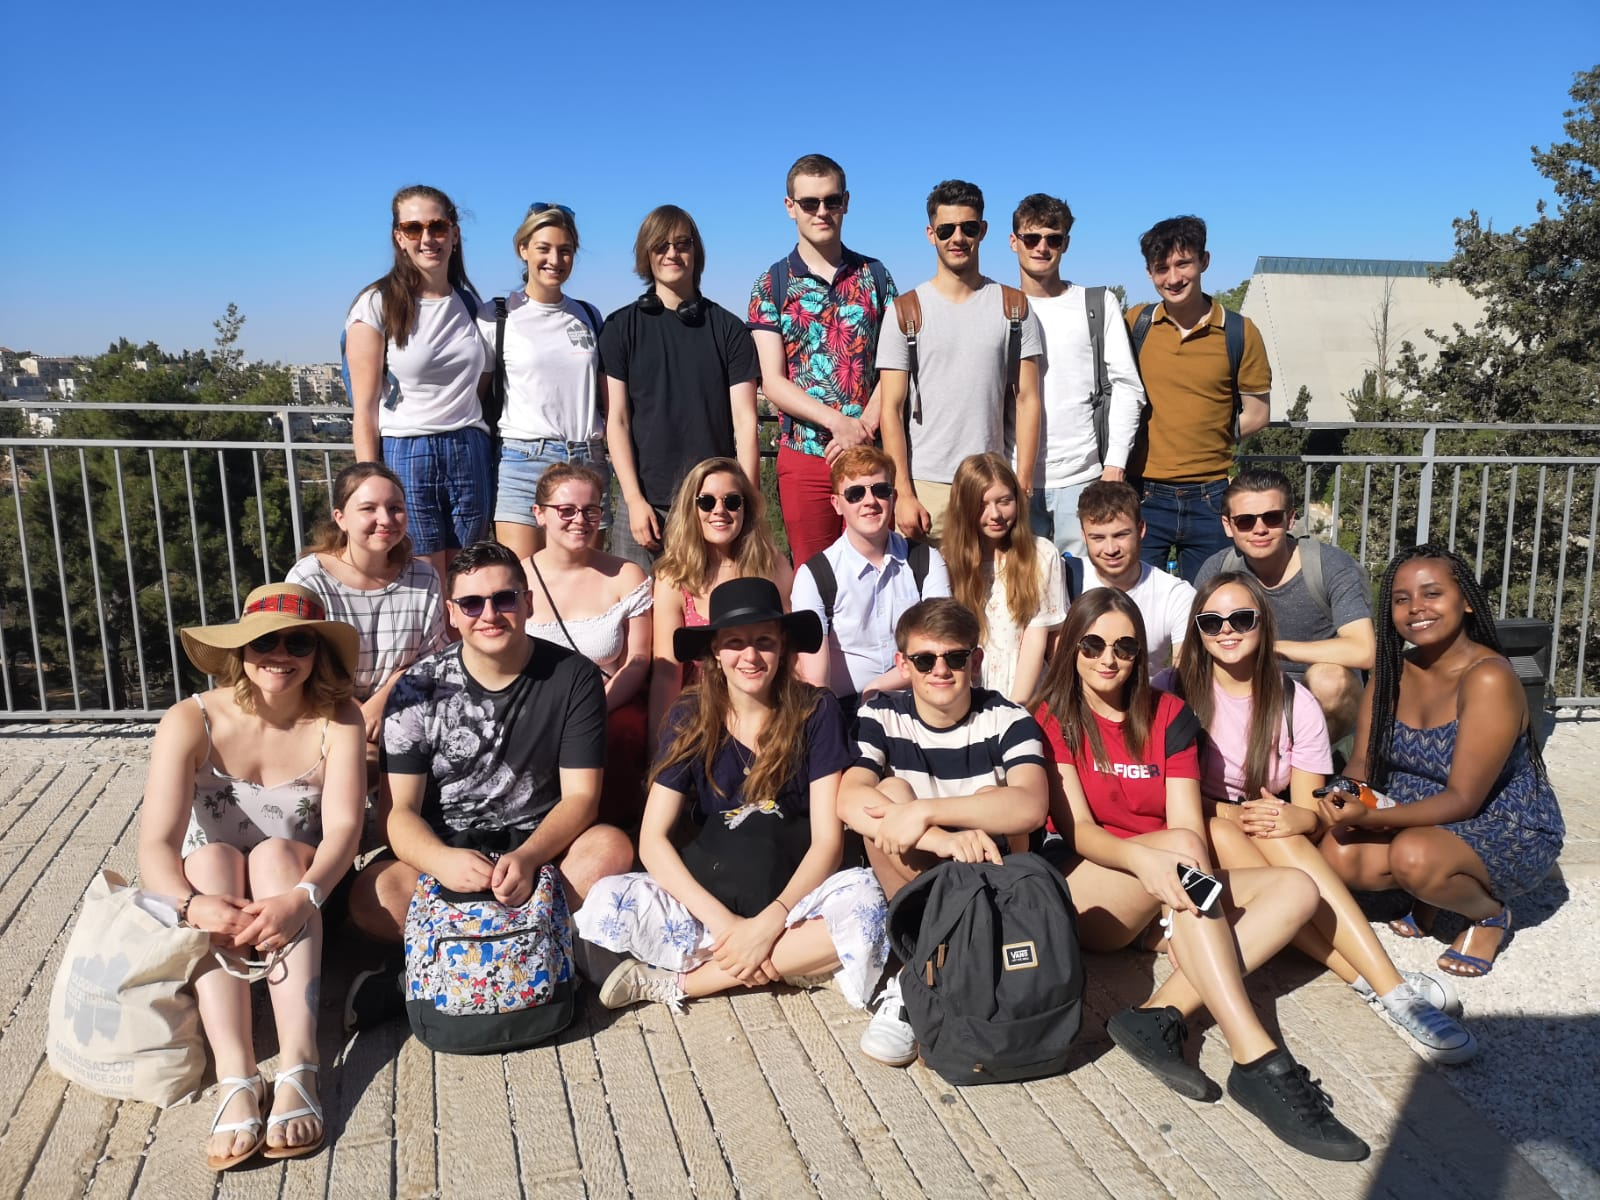 Group of ambassadors on a sunny day in Israel